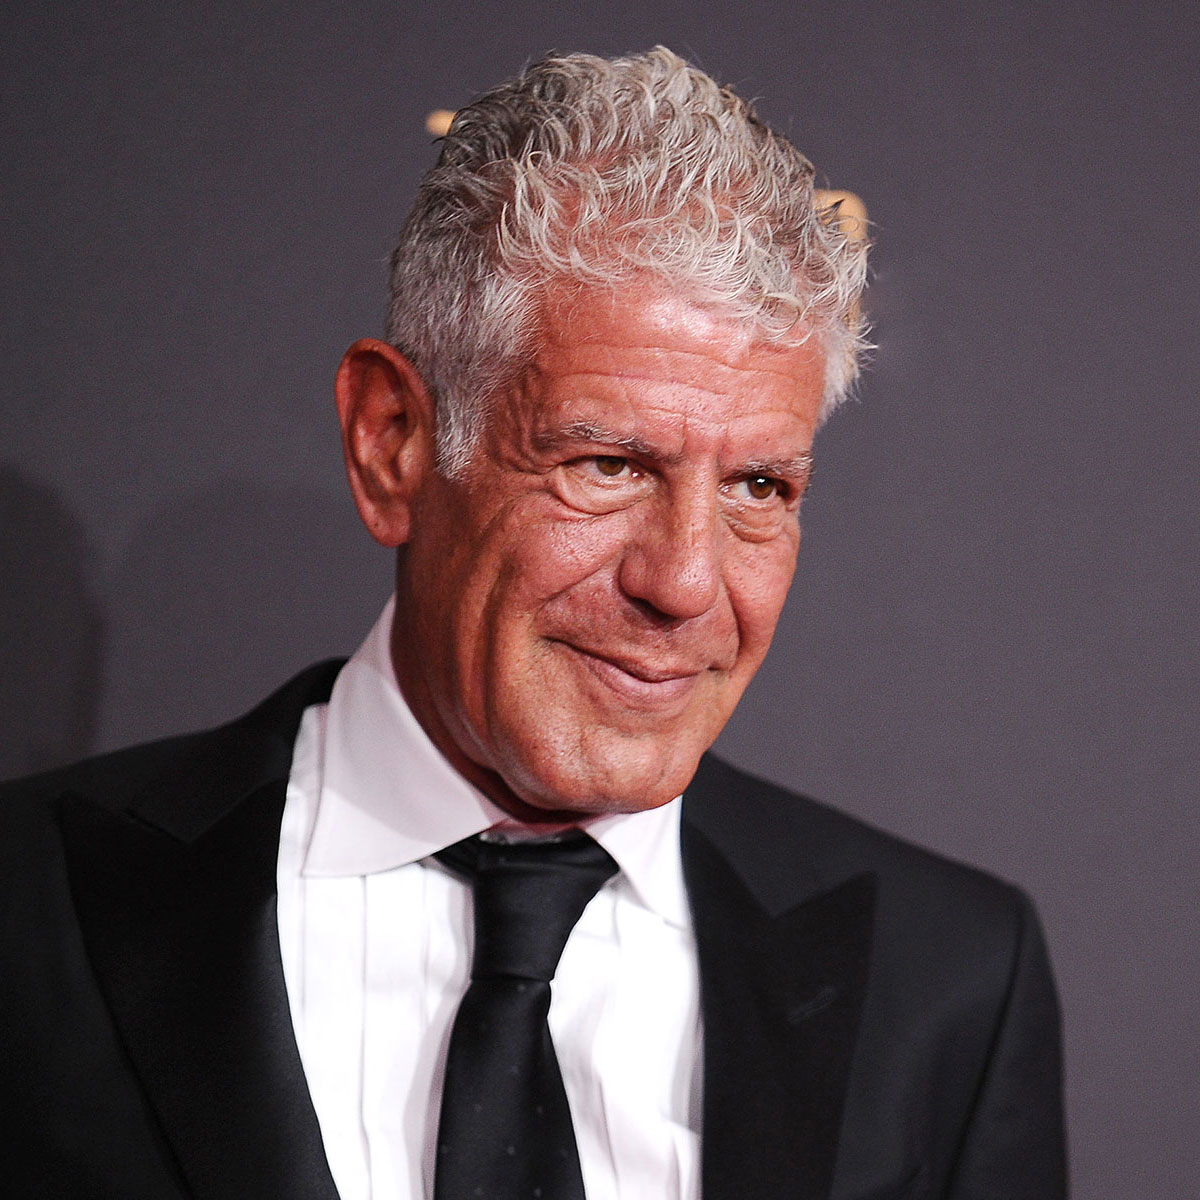 Anthony Bourdain Is Working on a Scripted TV Show